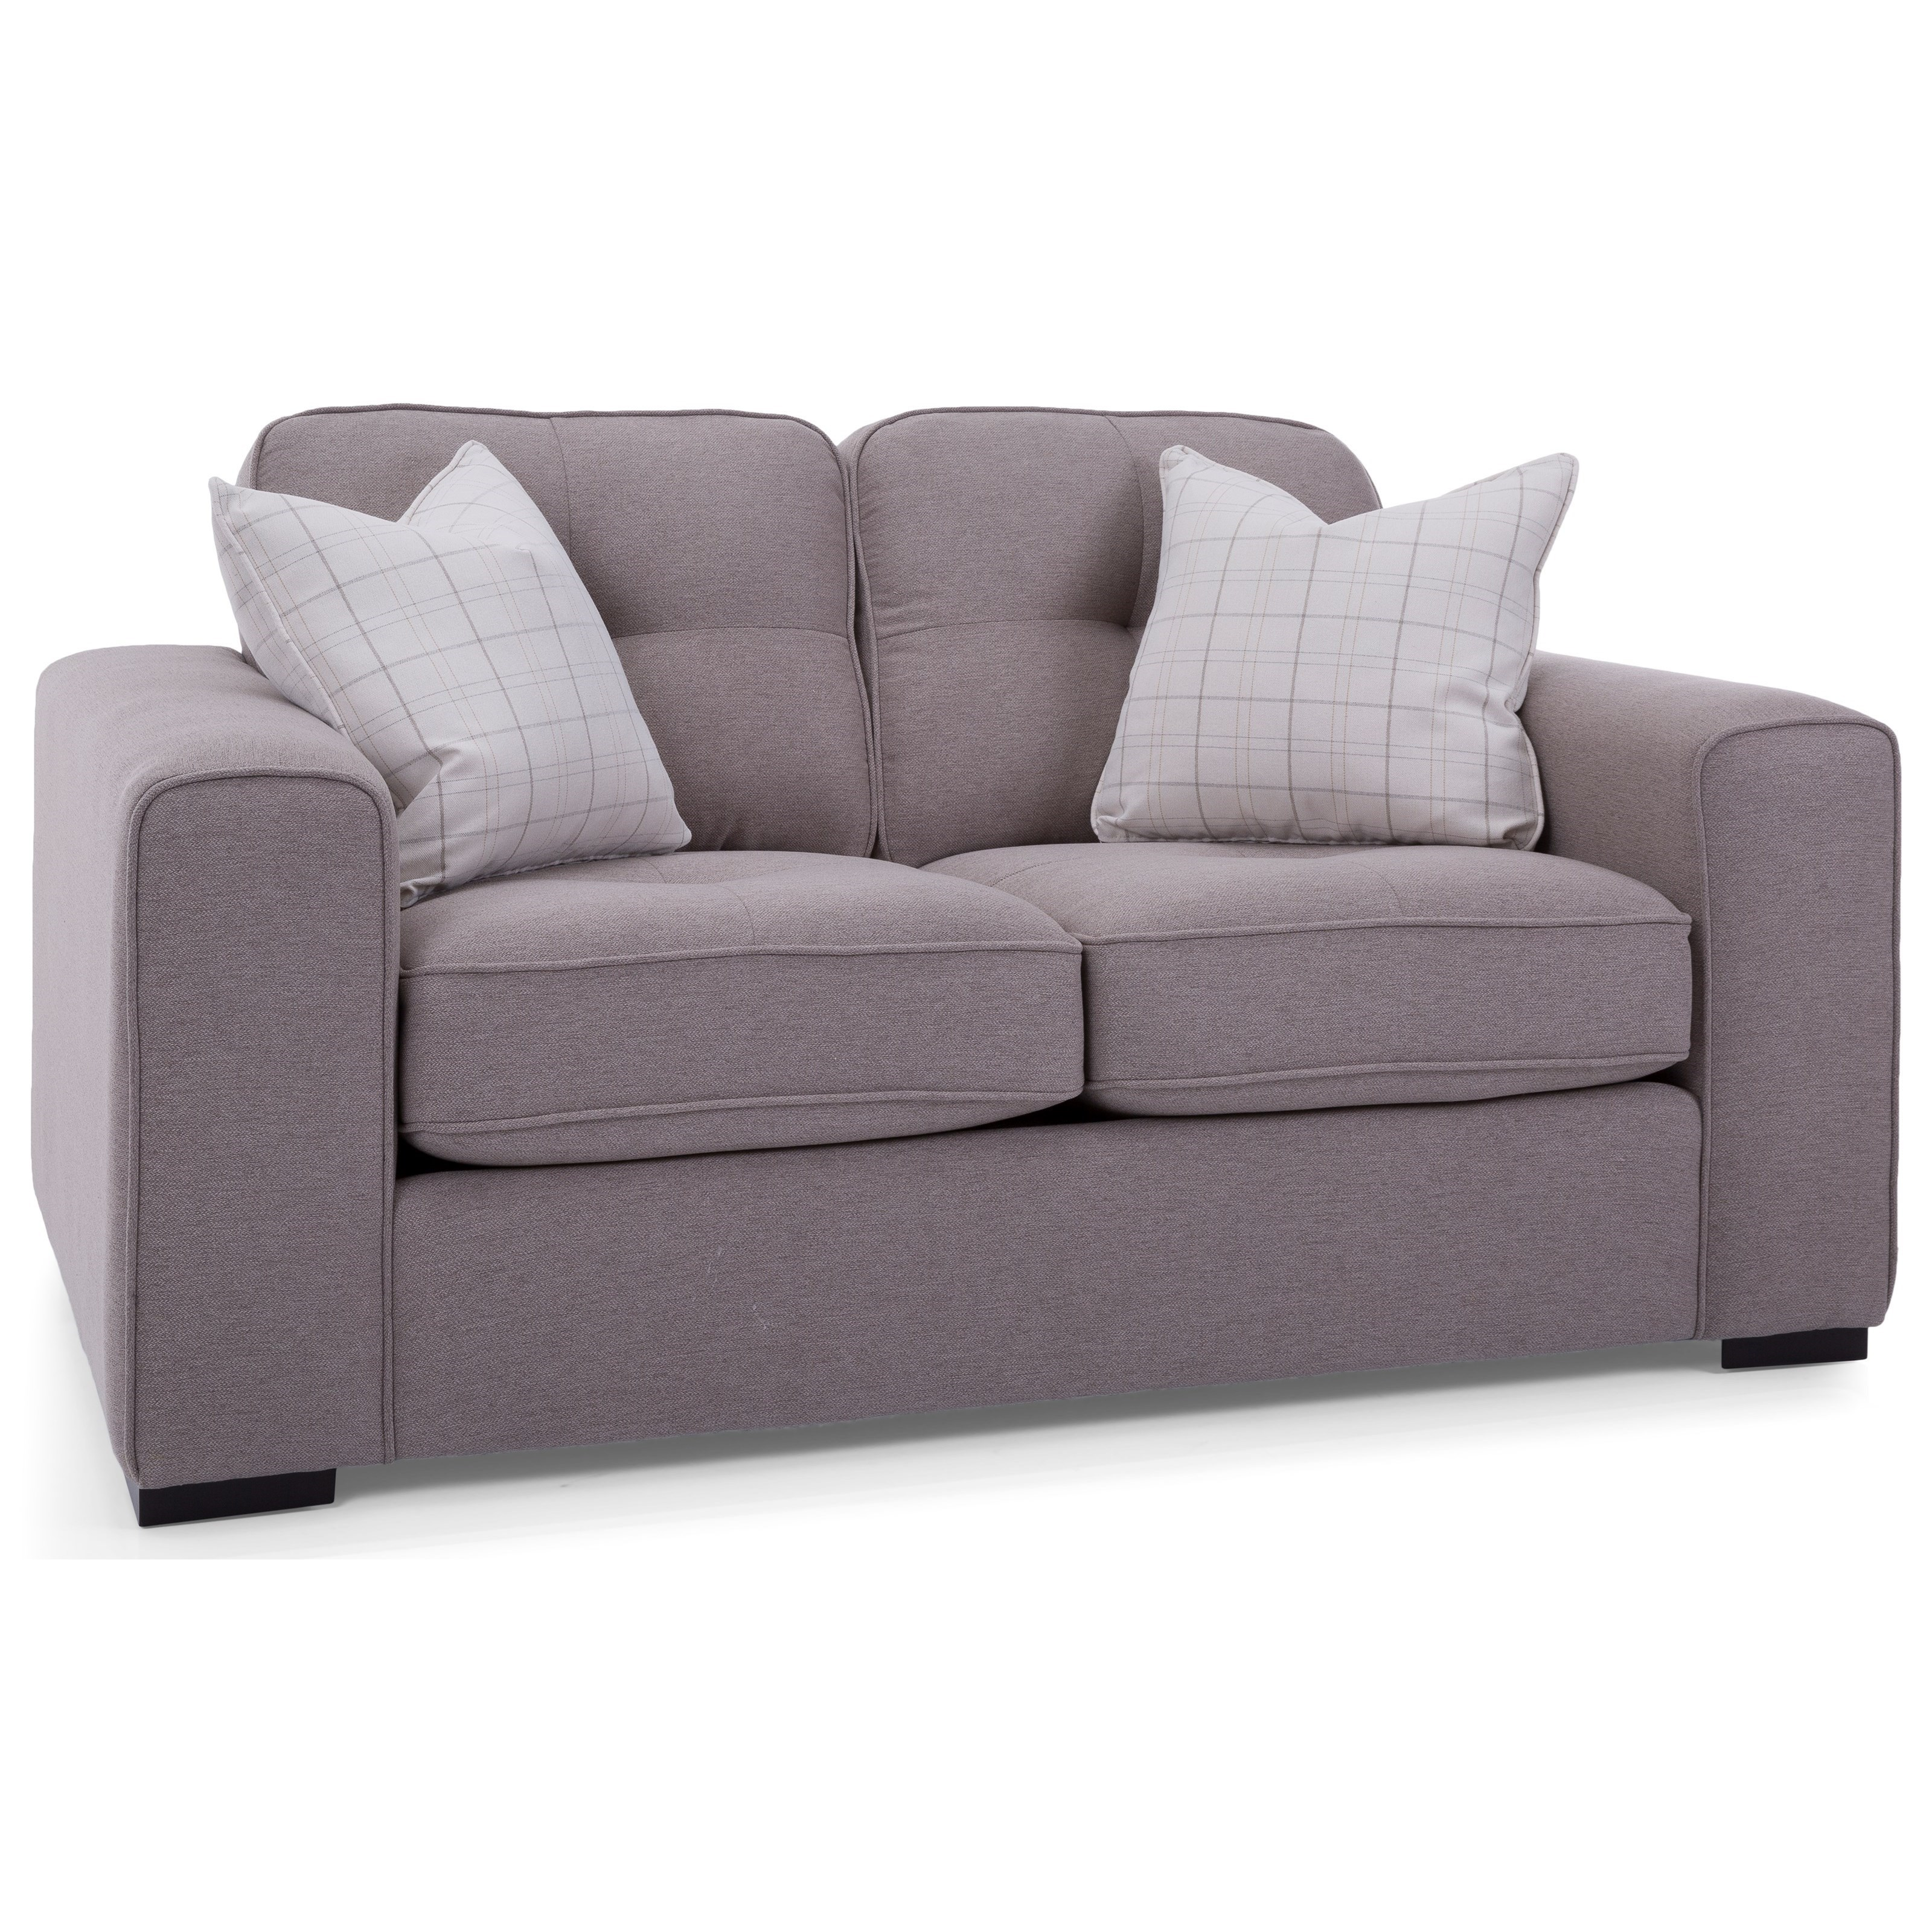 2990 Loveseat by Decor-Rest at Stoney Creek Furniture